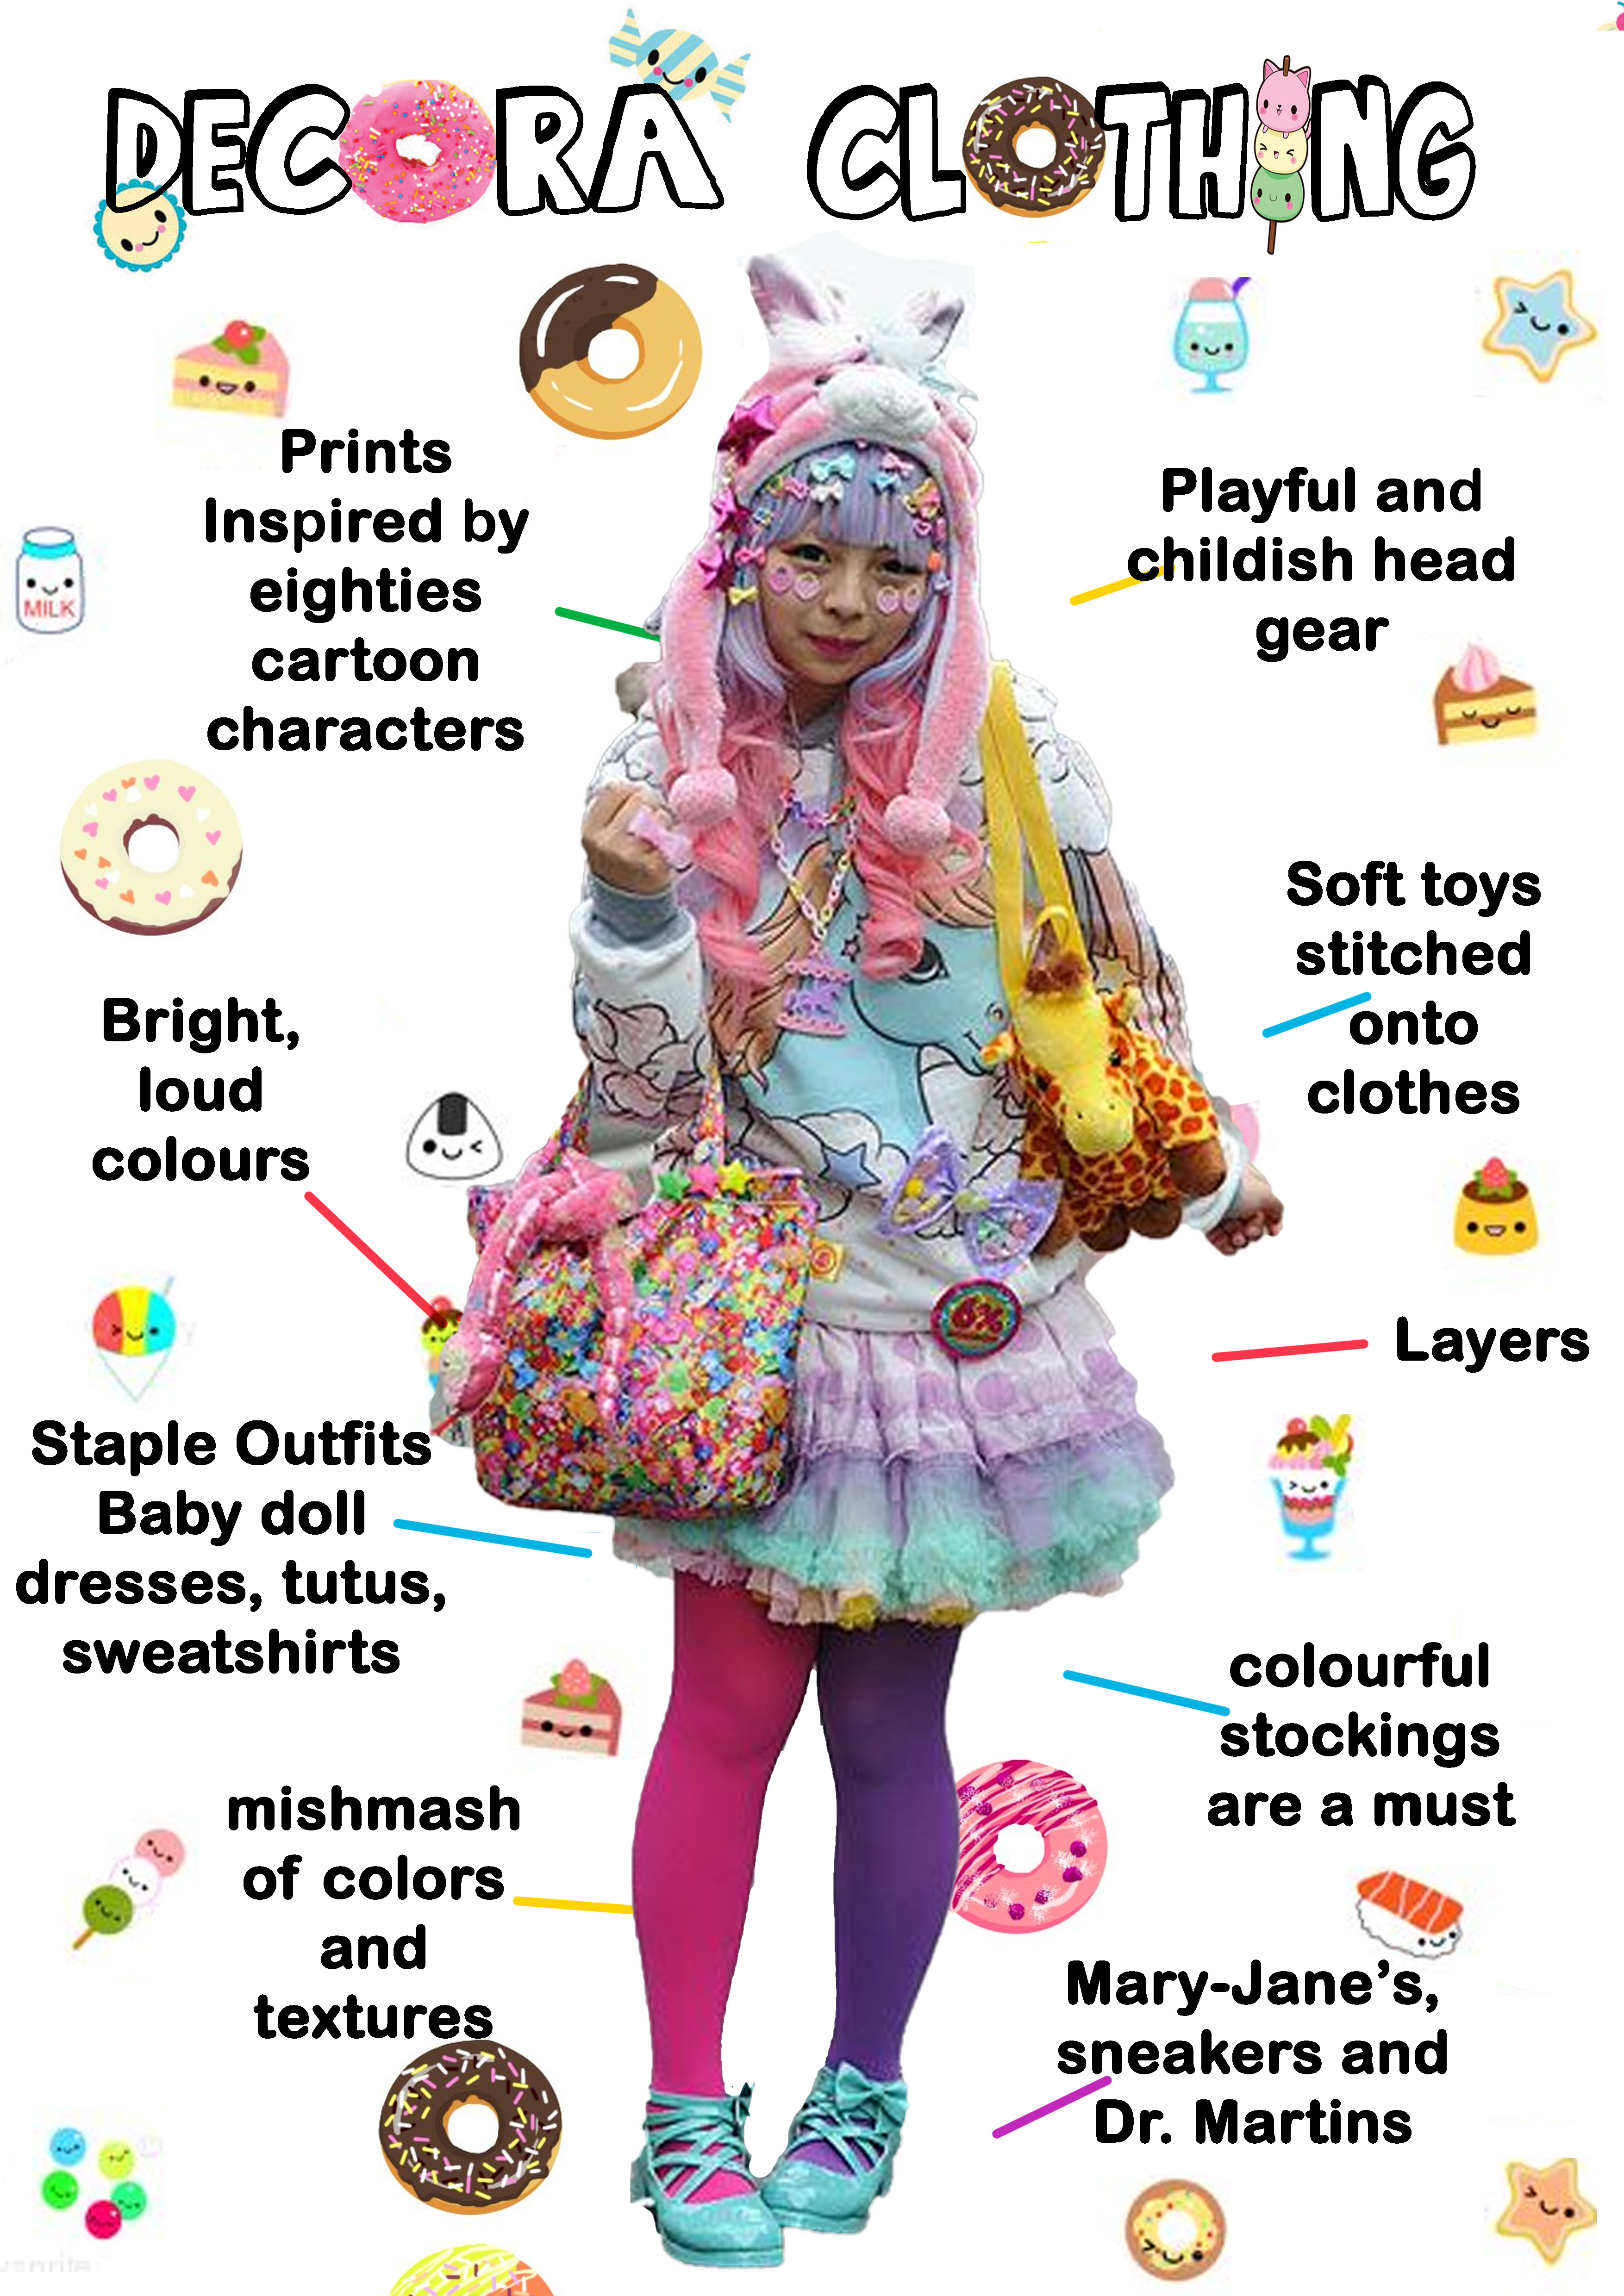 Decora Decoding The Decora Girls A Japanese Youth Subculture